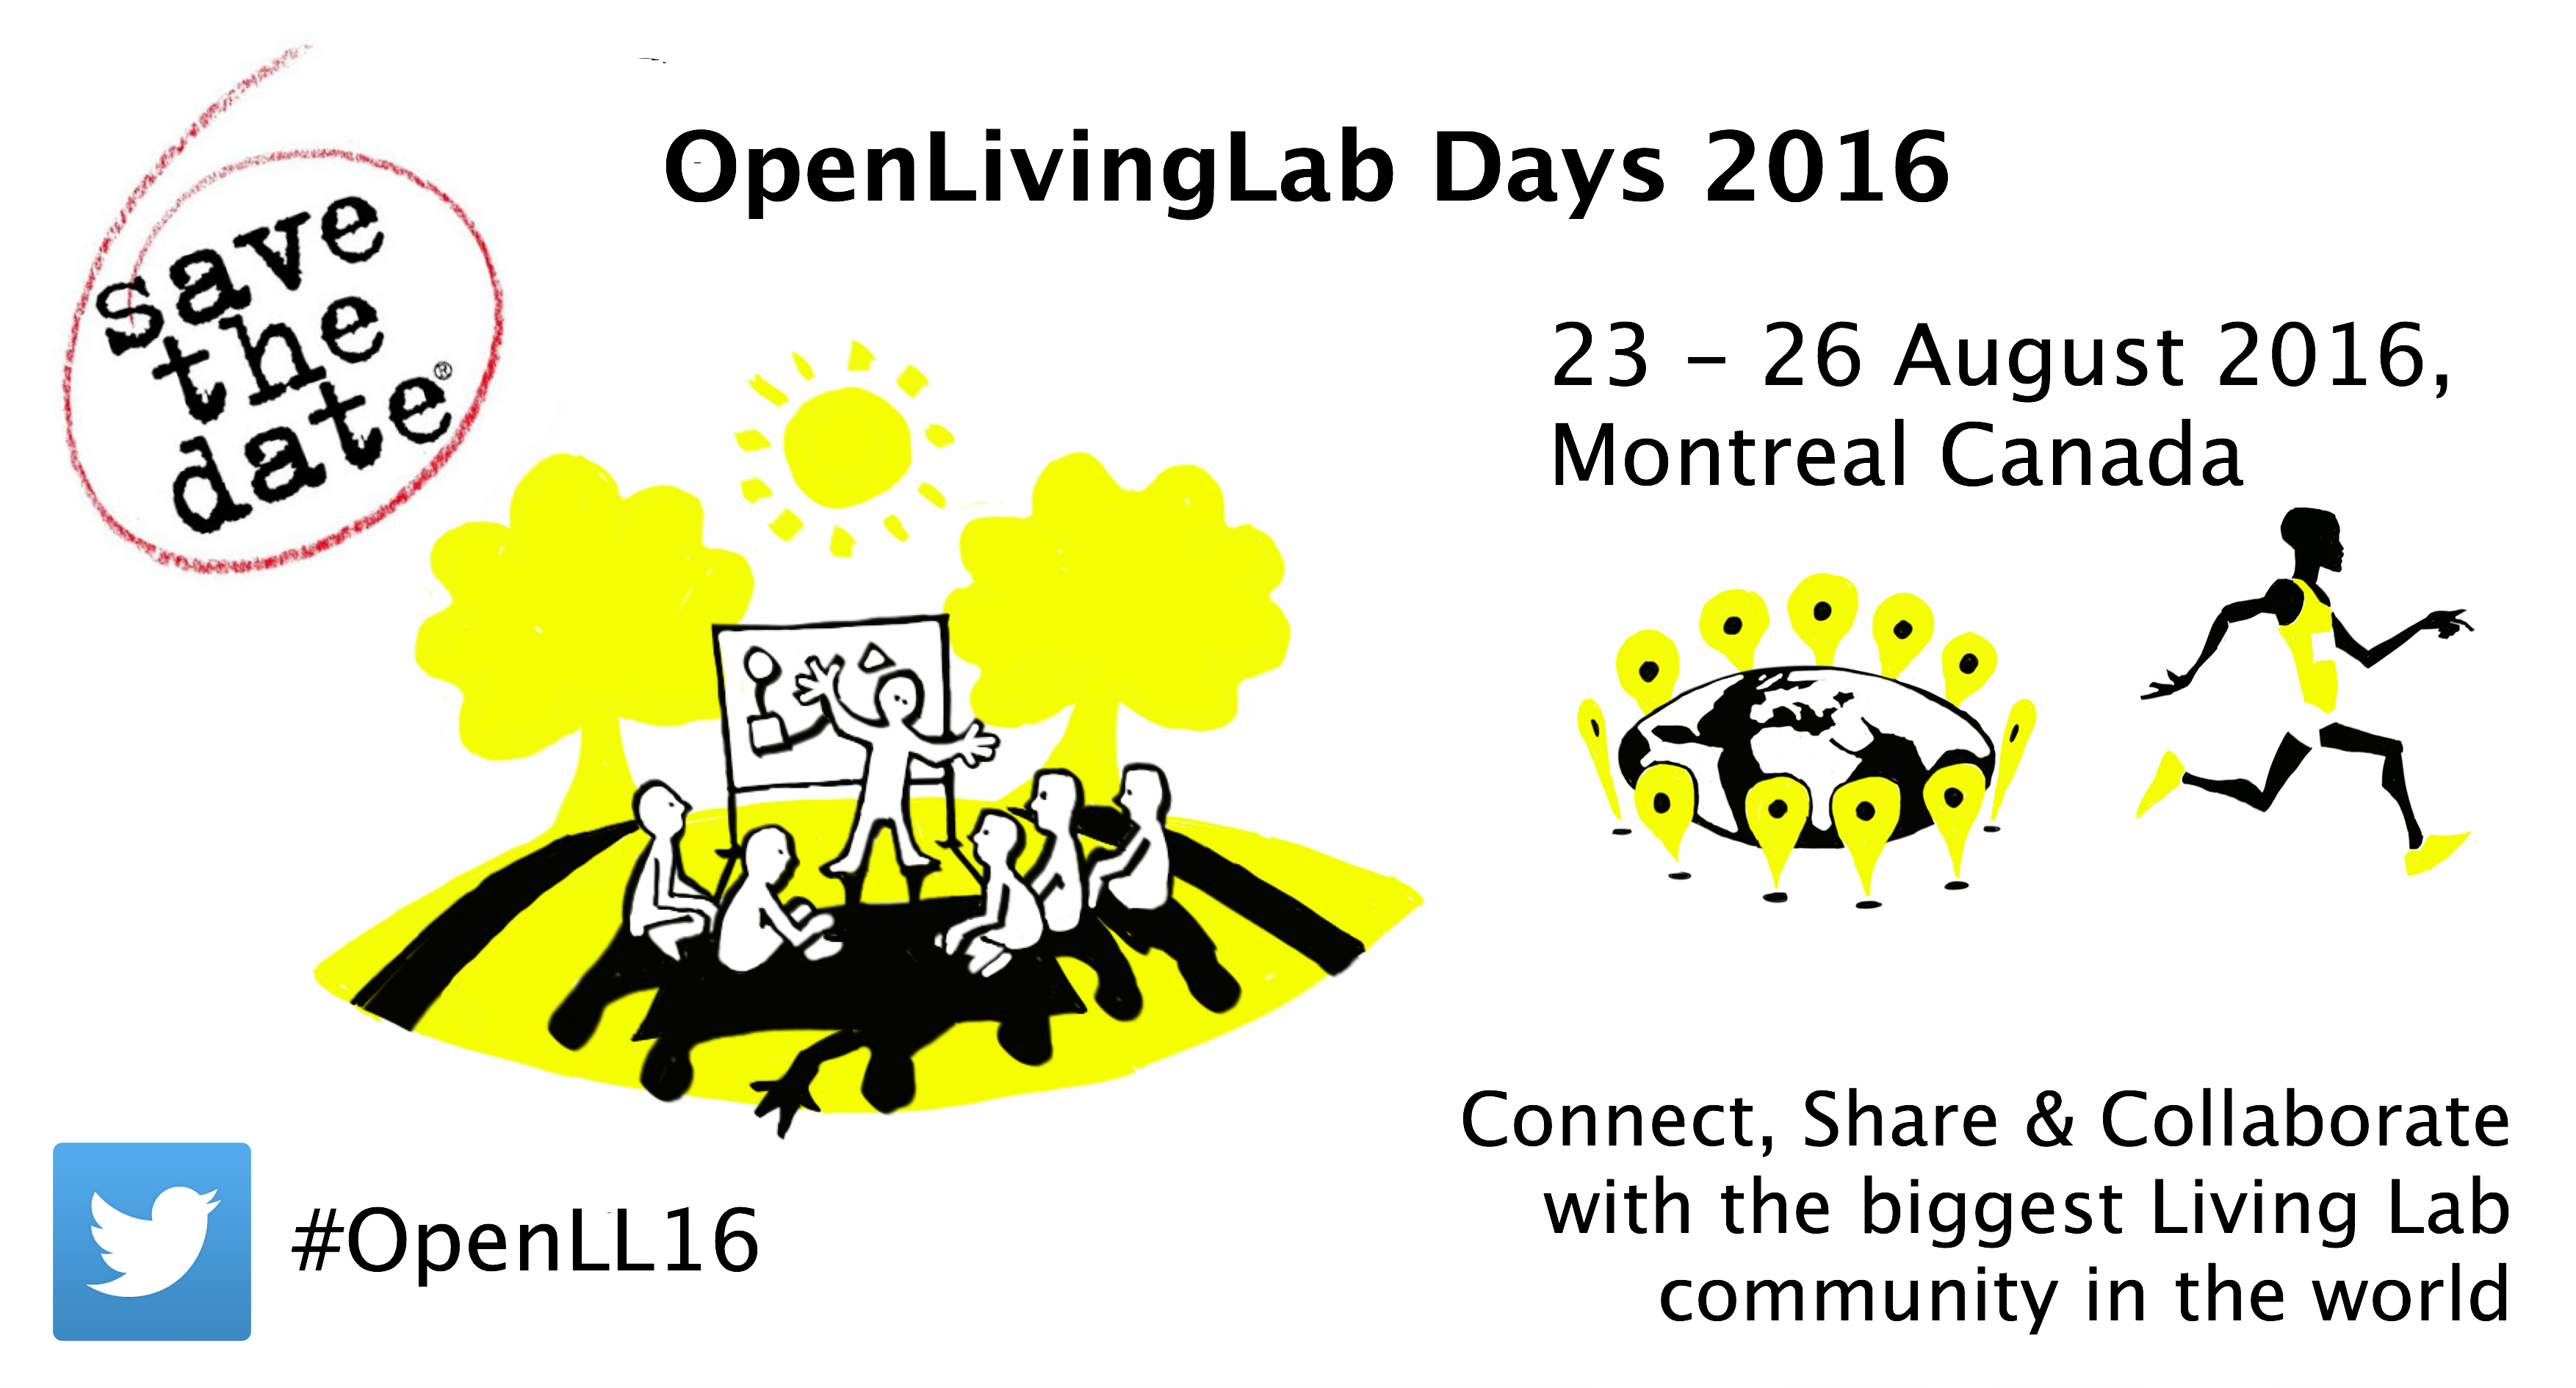 openlivinglab-days-2016-save-the-date-1